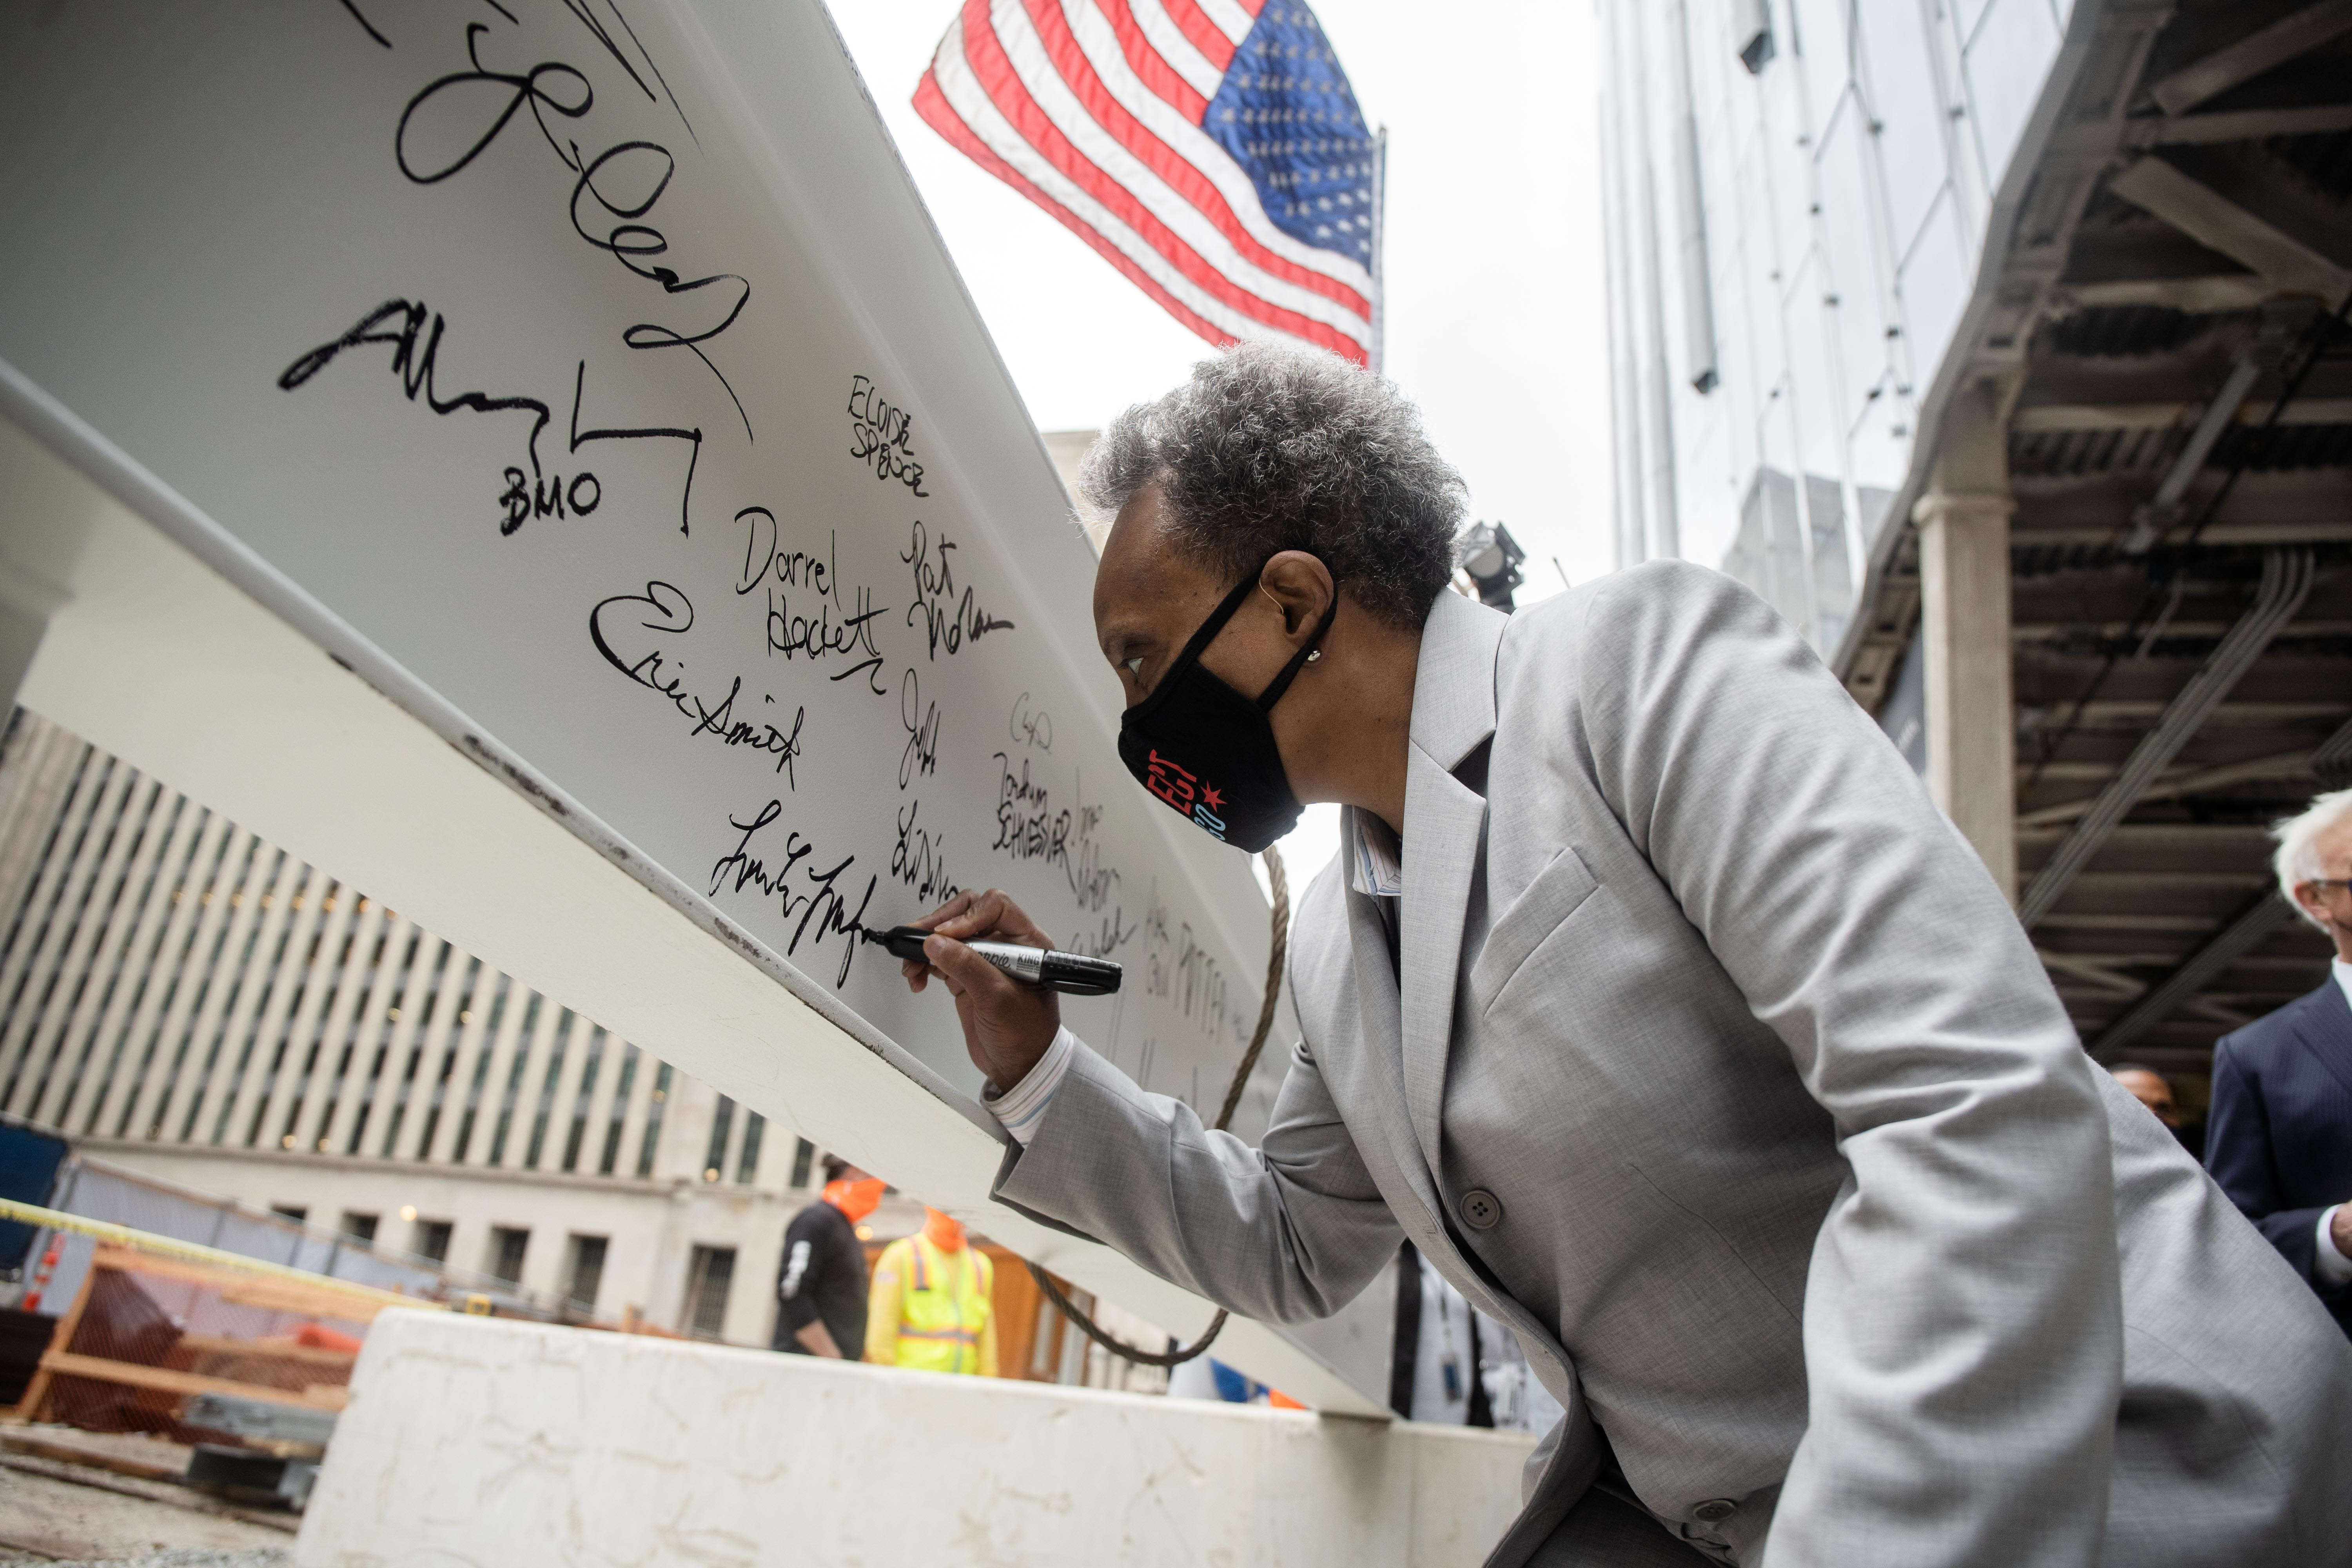 Chicago Mayor Lori Lightfoot signs a beam during the topping off ceremony at BMO Tower, located at 320 S. Canal St. in the West Loop Gate, Thursday morning, April 8, 2021.